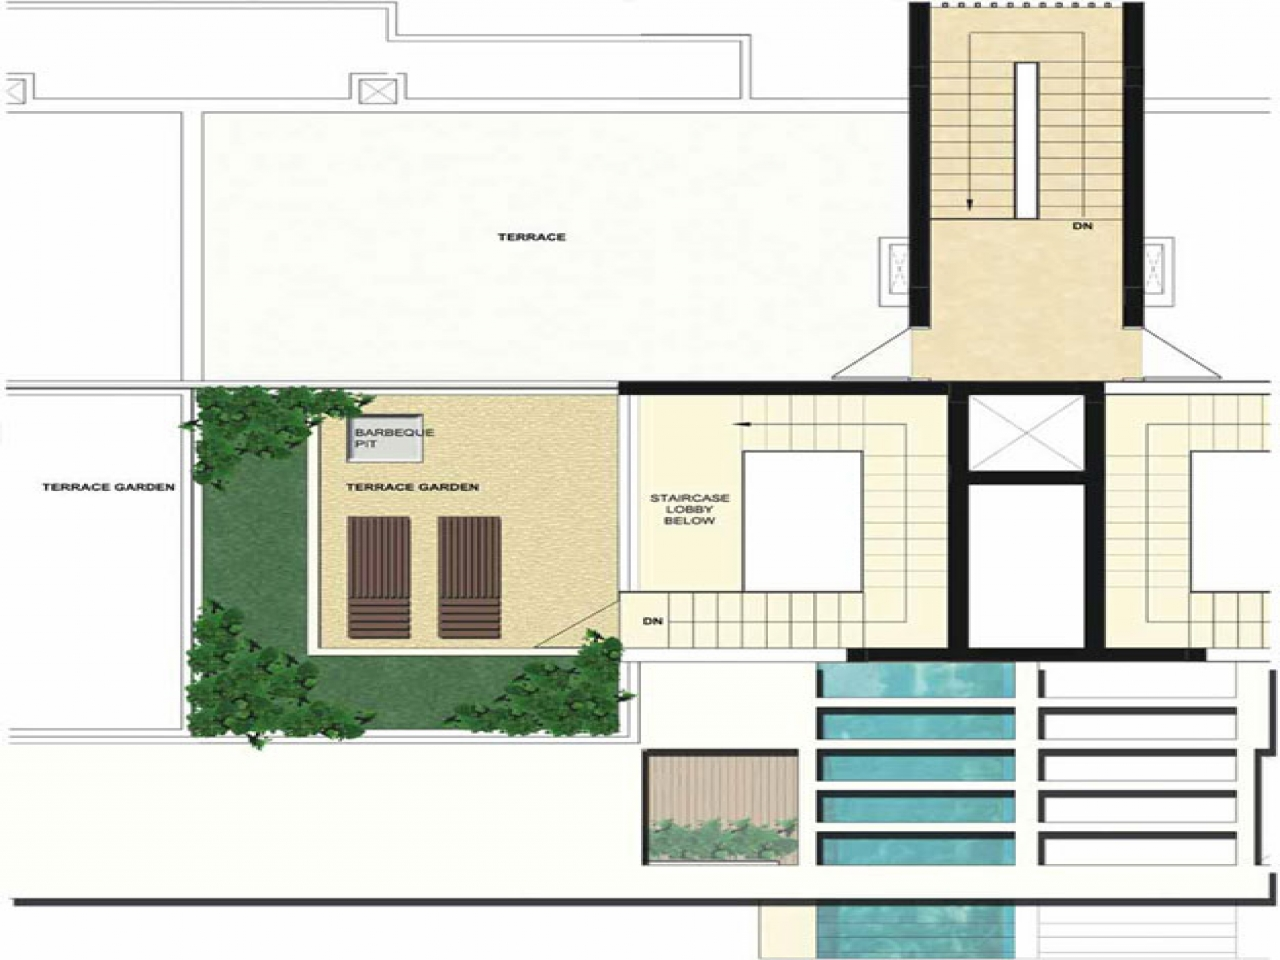 One story floor plans stilt home floor plans stilt home plans - Stilt home designs ...